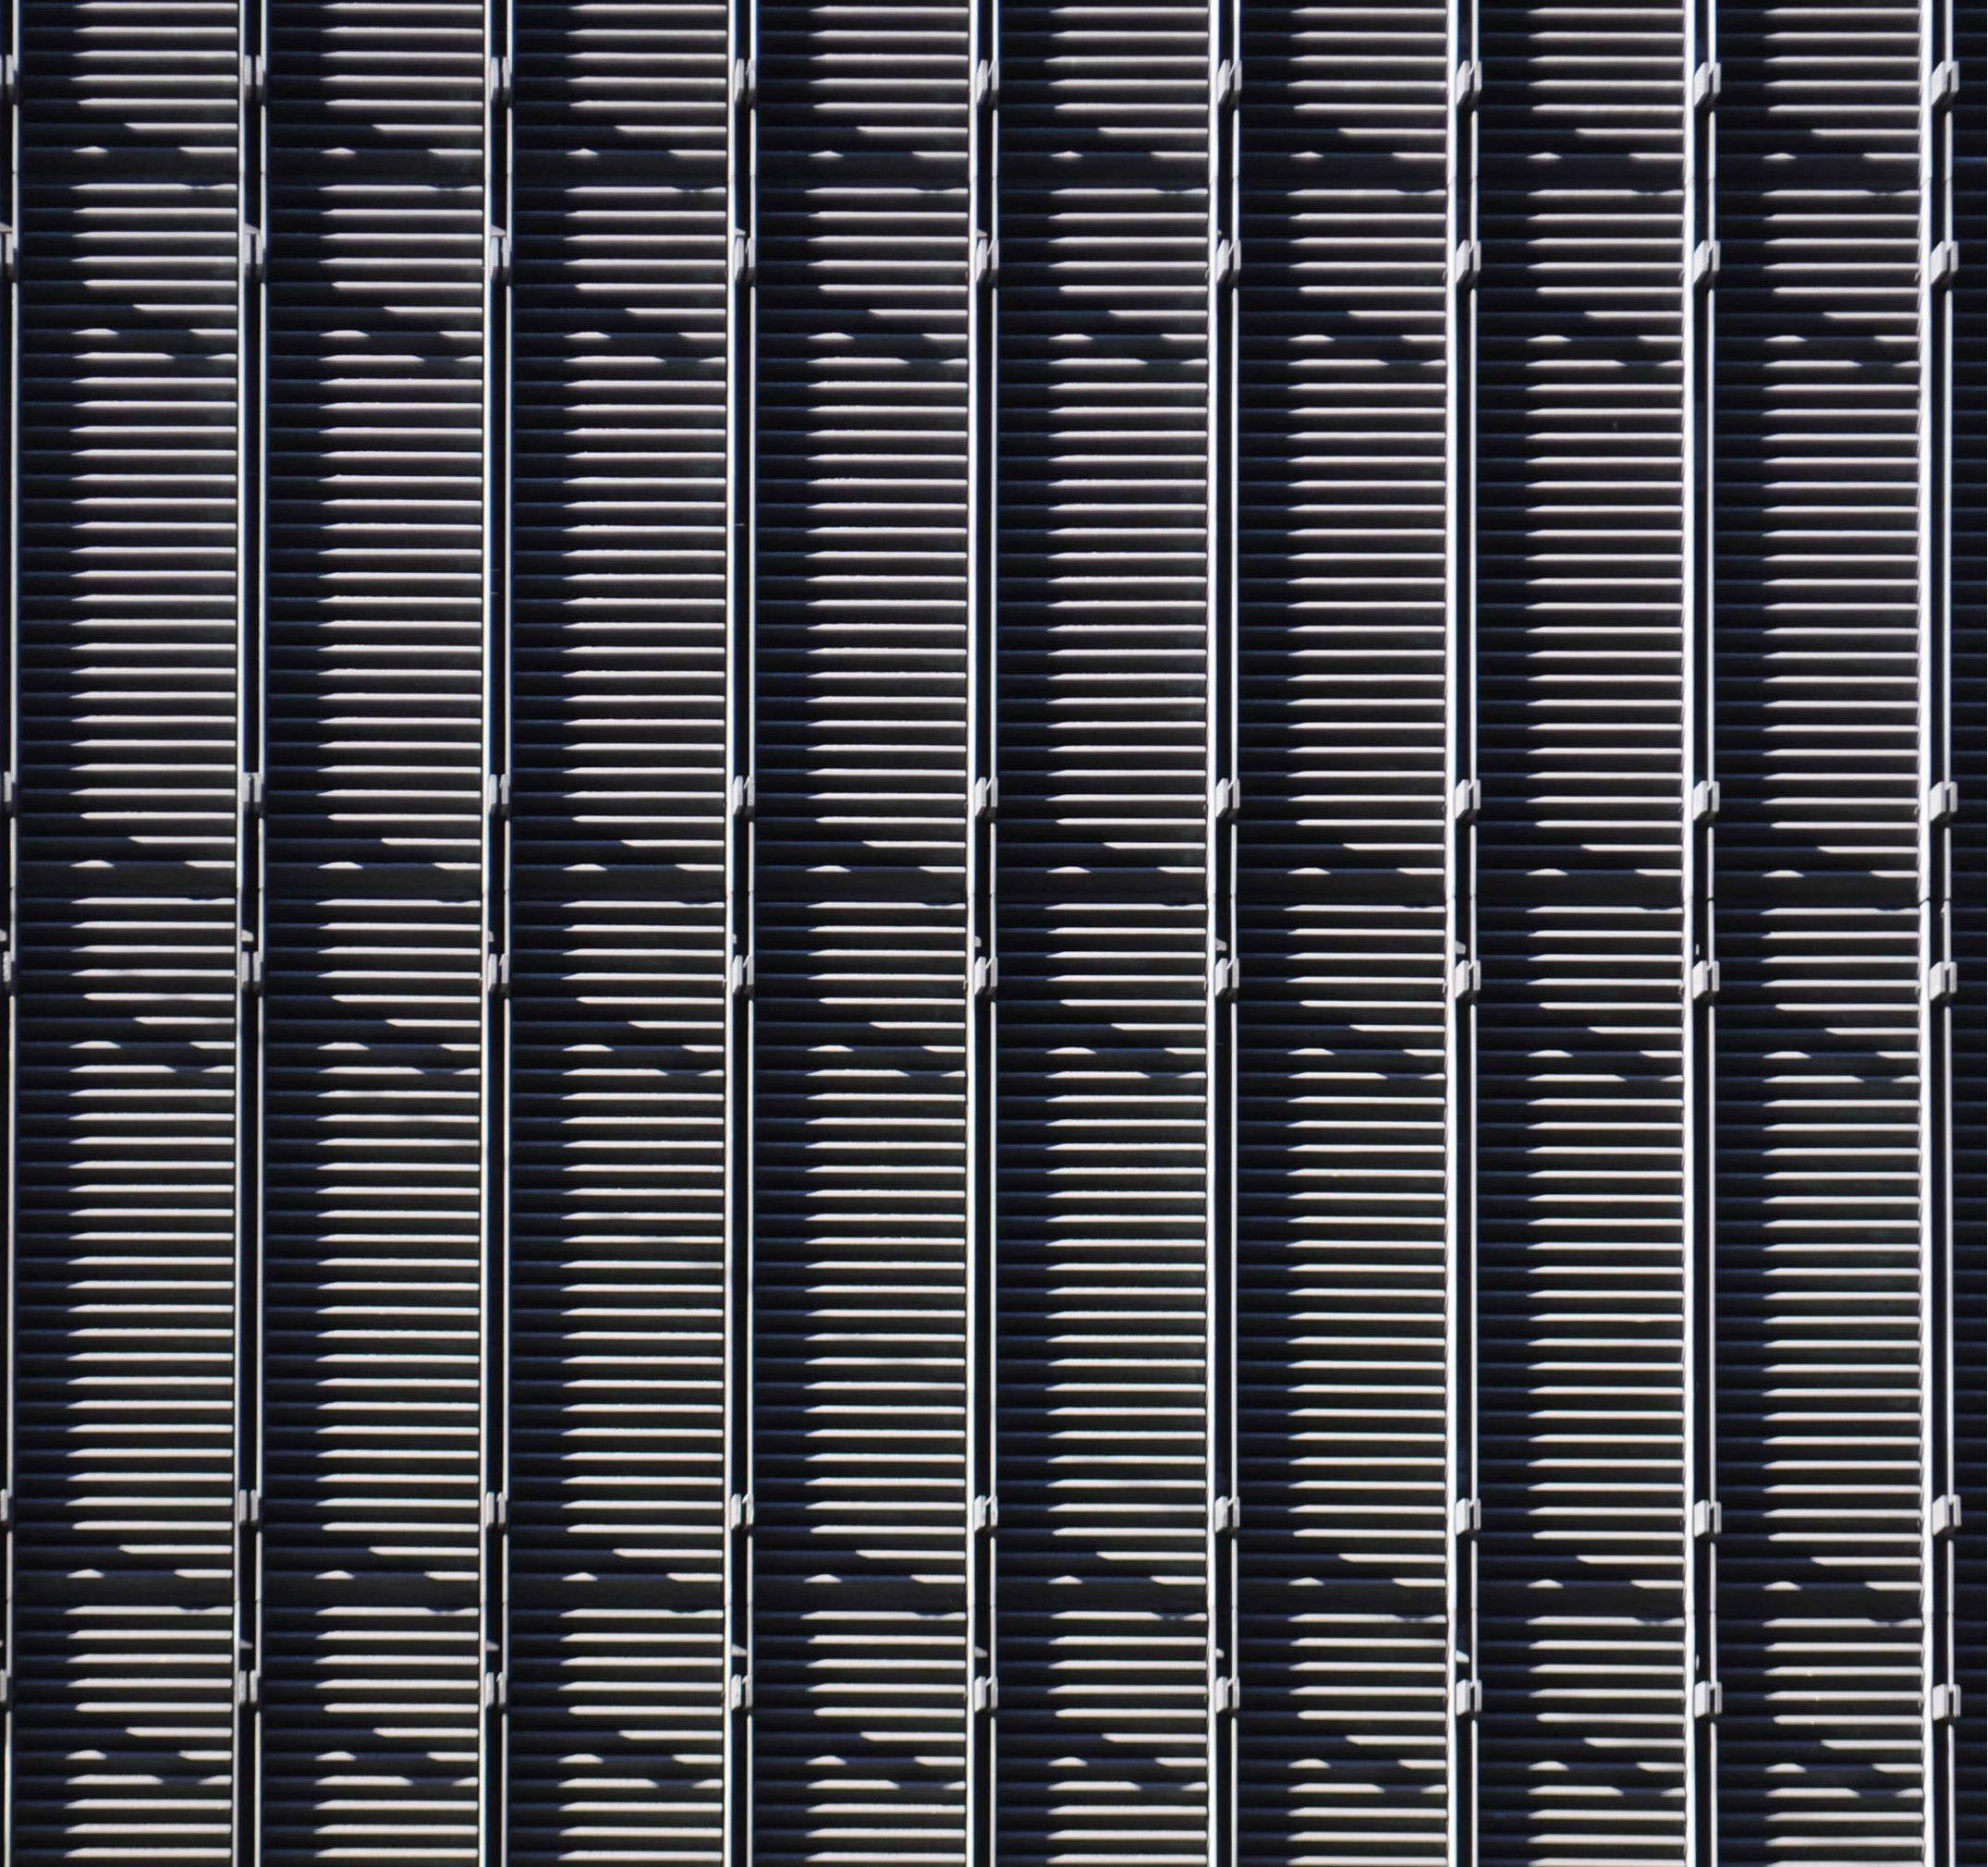 An abstract shot of the building's façade